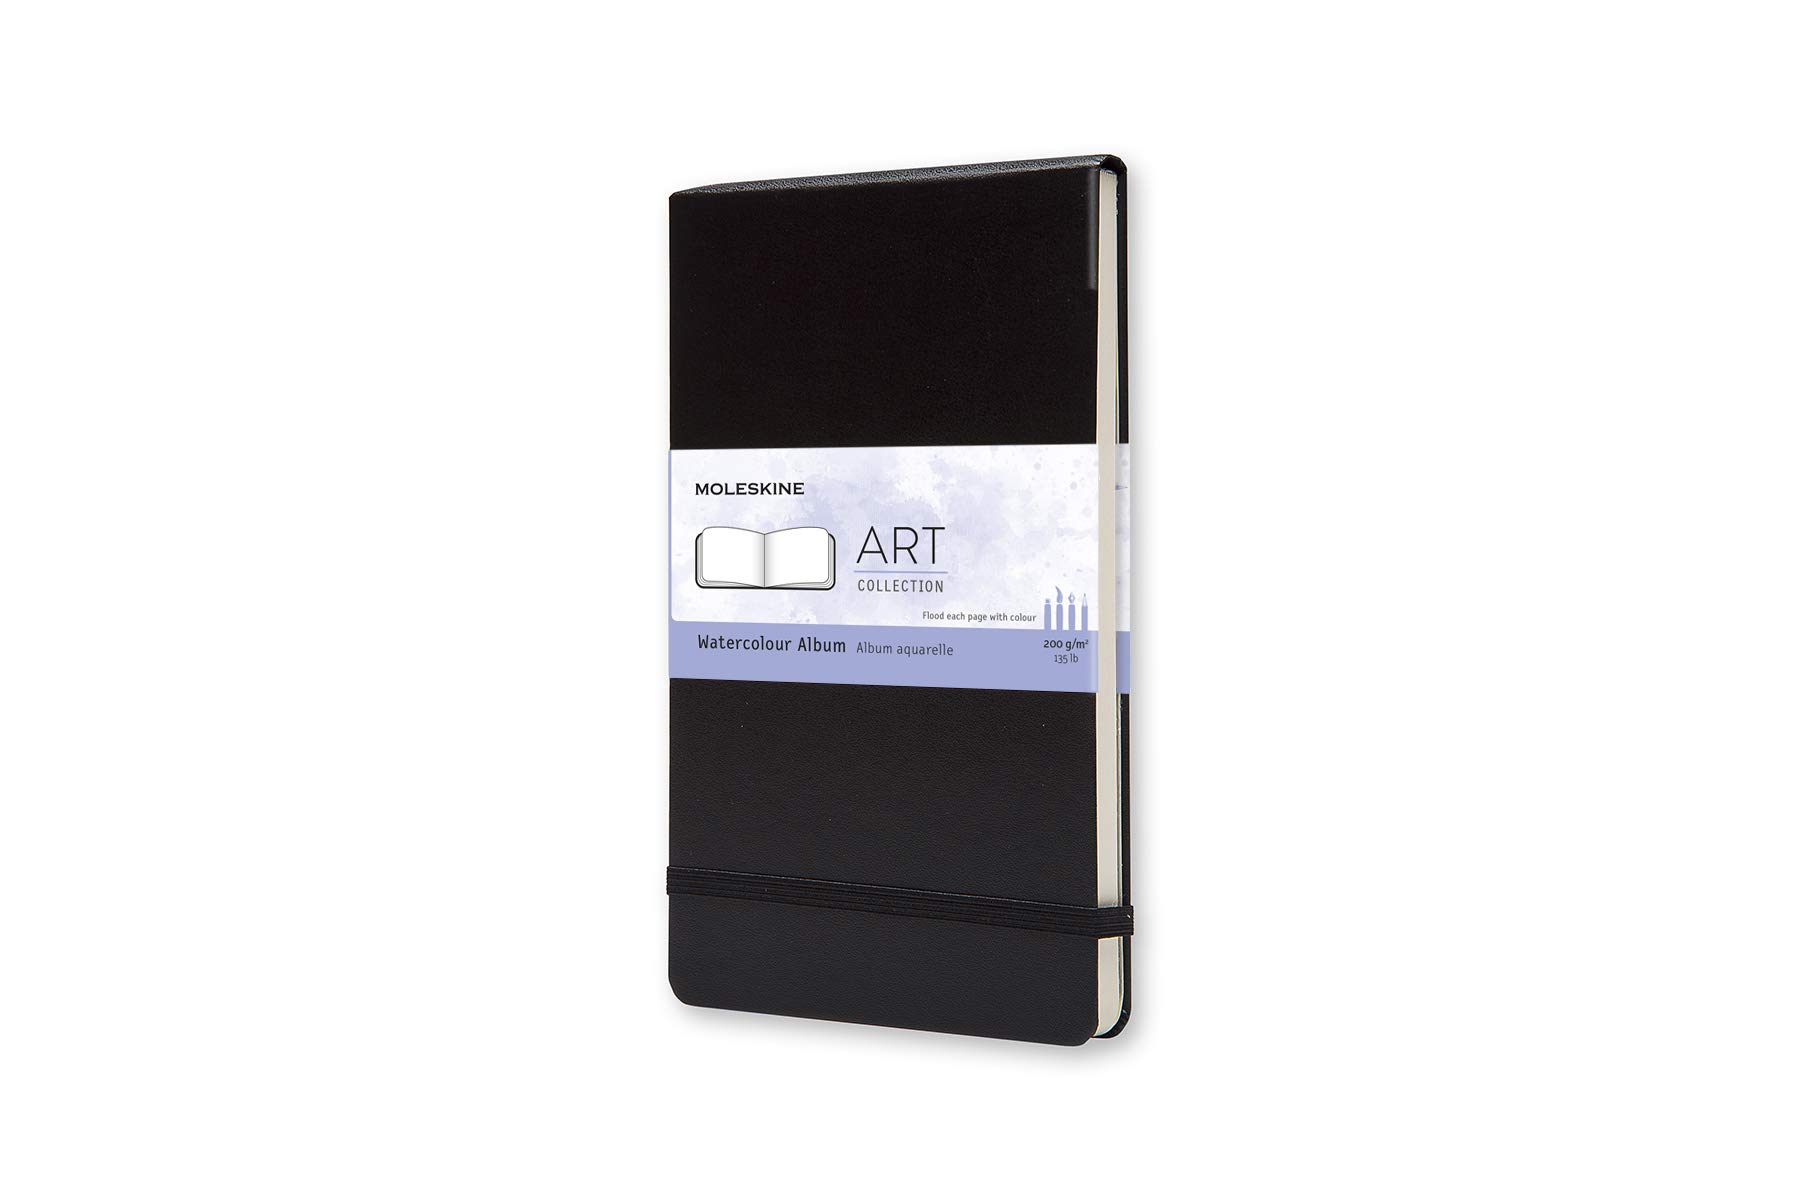 Moleskine Art Plus Hard Cover Watercolor Album, Plain, Large